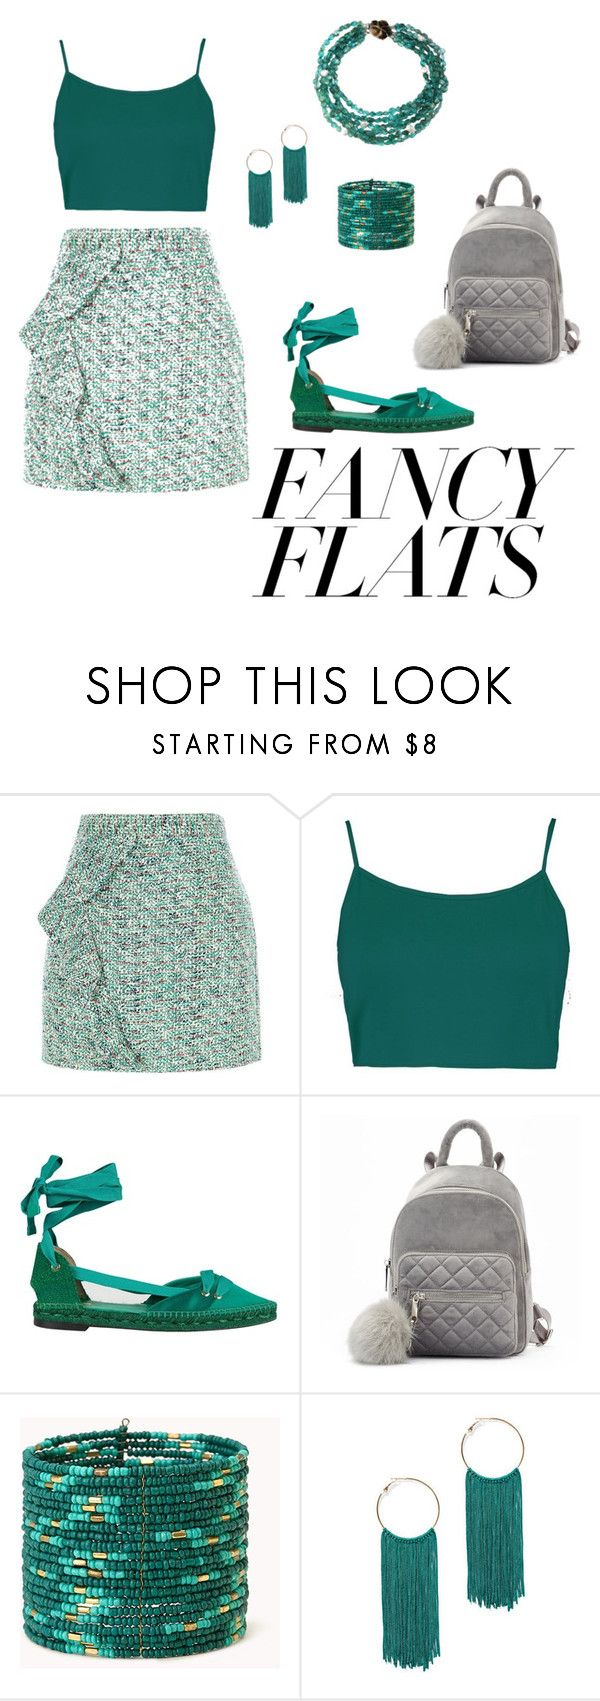 """Tealing out"" by jordan-alysa ❤ liked on Polyvore featuring River Island, Boohoo, Castañer, Forever 21, New York & Company and chicflats"